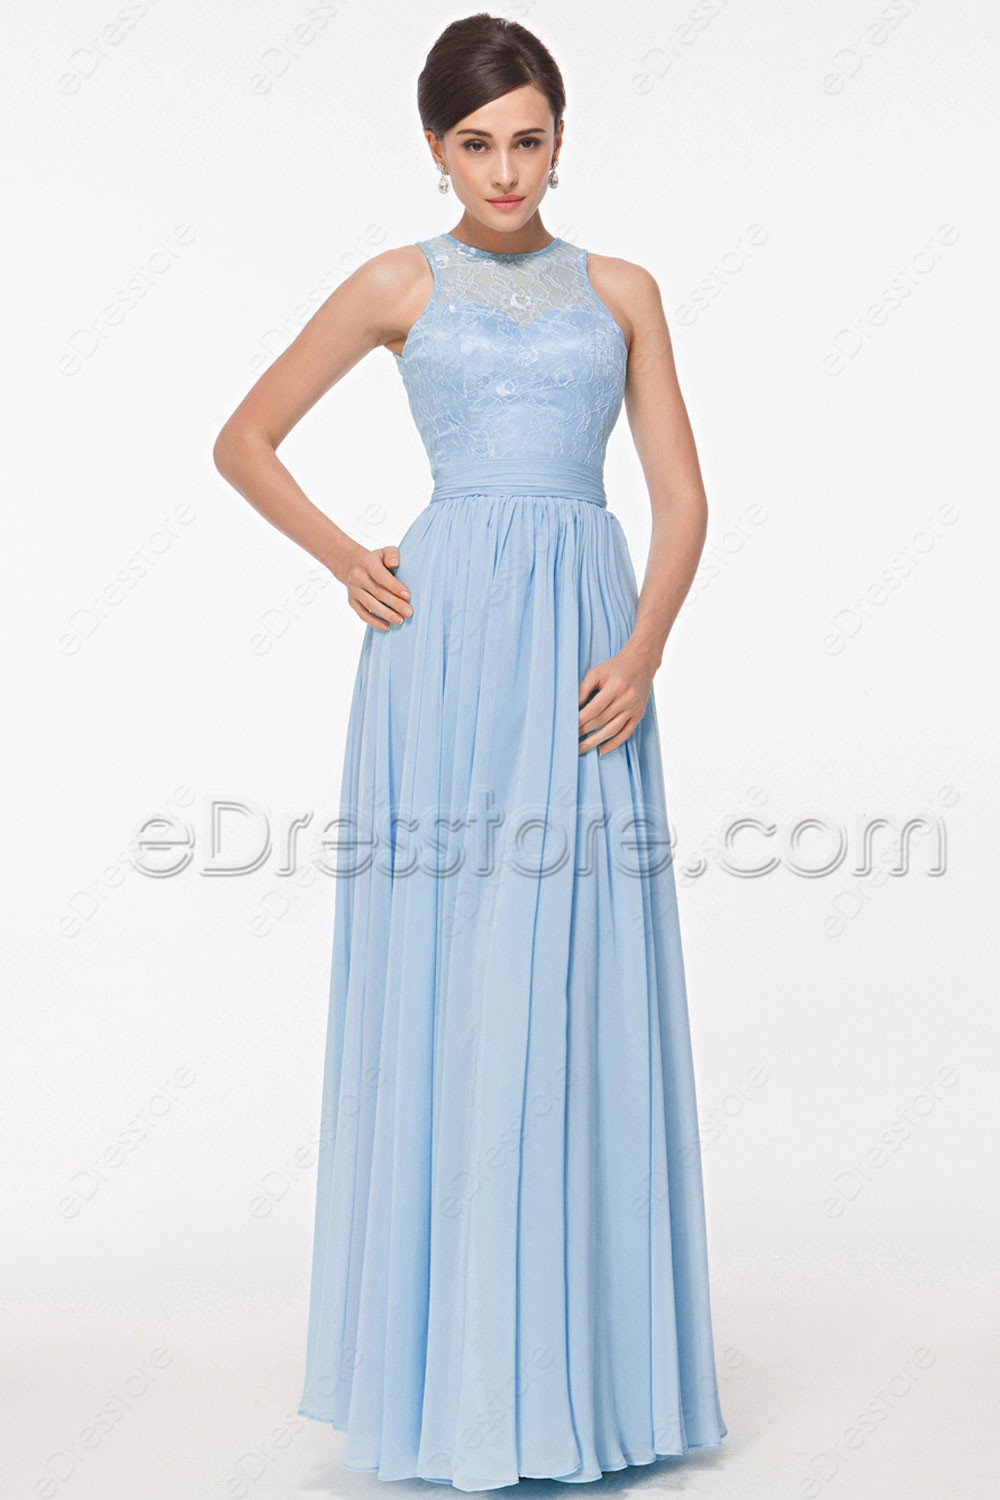 Lace light blue bridesmaid dresses key hole back for Light blue dress for wedding